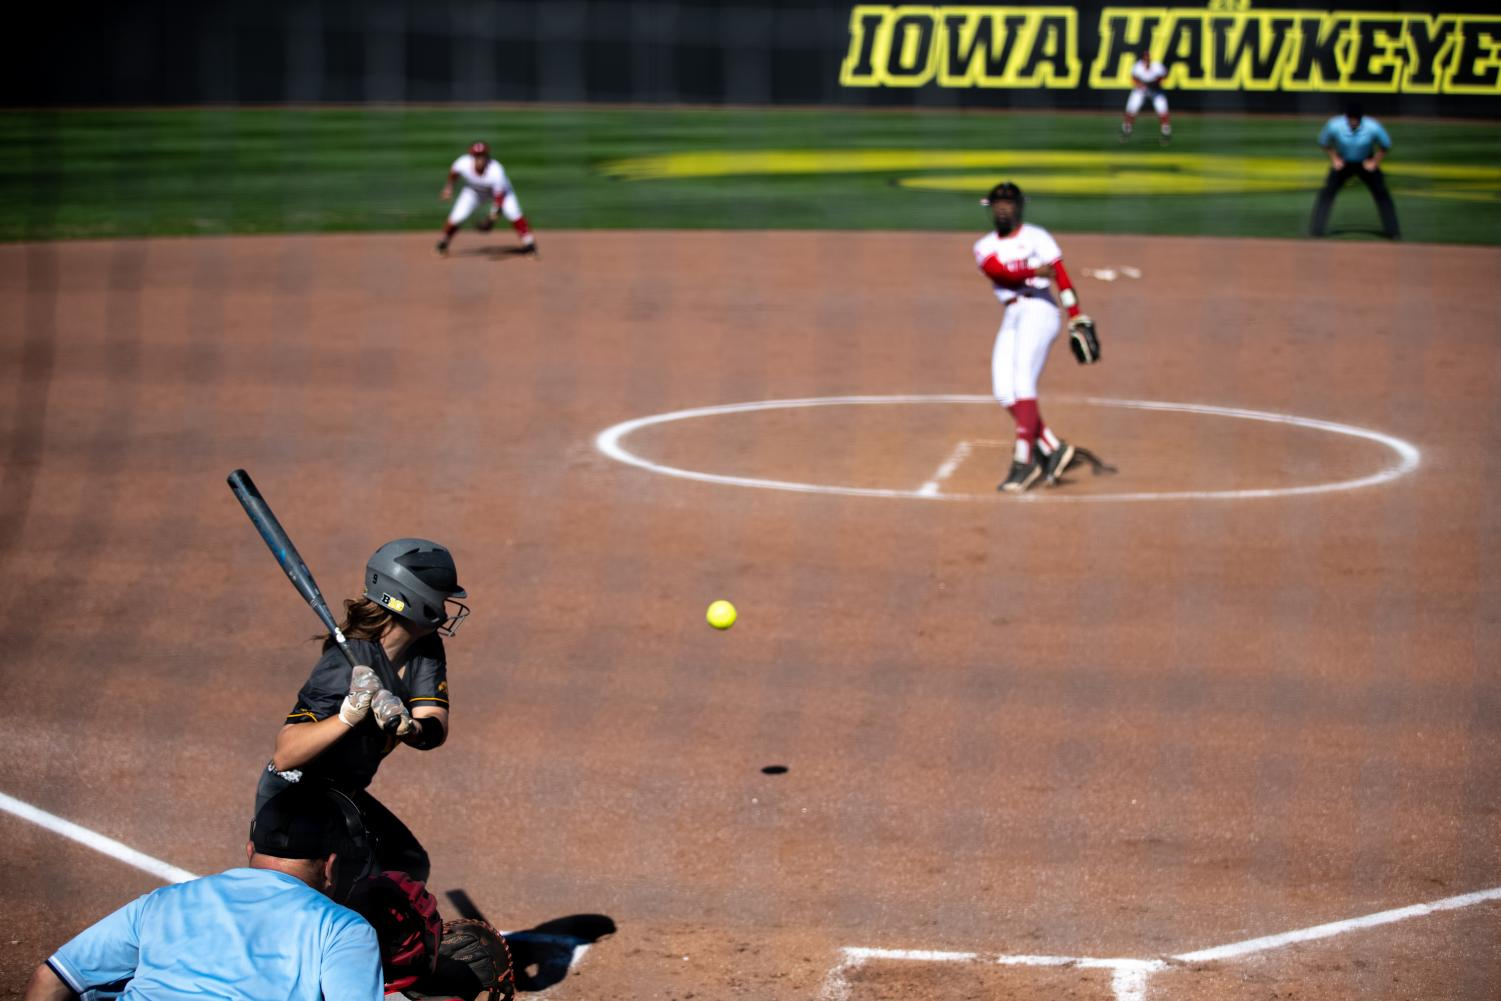 Iowa+utility+player+Abby+Lien+prepares+to+swing+during+the+game+against+Nebraska+at+the+Bob+Pearl+Softball+Field+on+Wednesday%2C+April+24%2C+2019.+The+Hawkeyes+were+defeated+7-5+by+the+Huskers.+